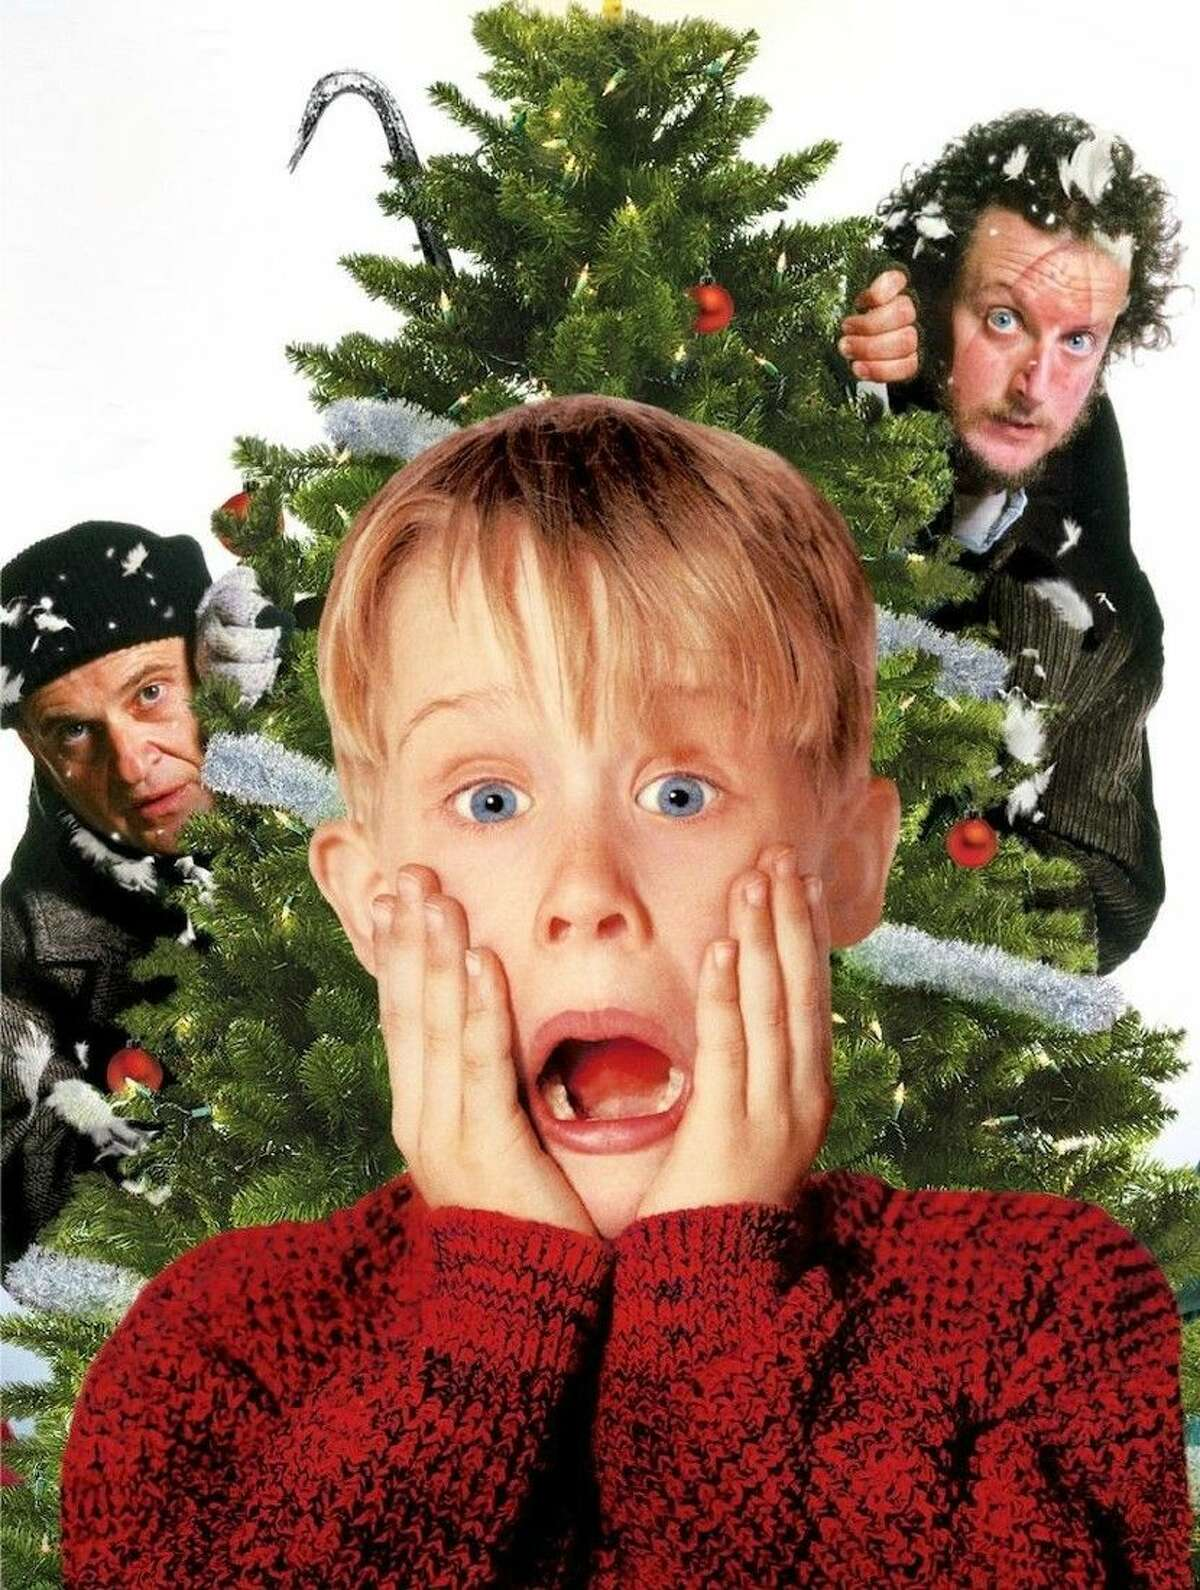 """The Houston Symphony will bring in the month of December with holiday-inspired laughter as audiences watch a screening of """"Home Alone"""" accompanied by a live performance at Jones Hall on Friday, Dec.4, at 7:30 p.m."""